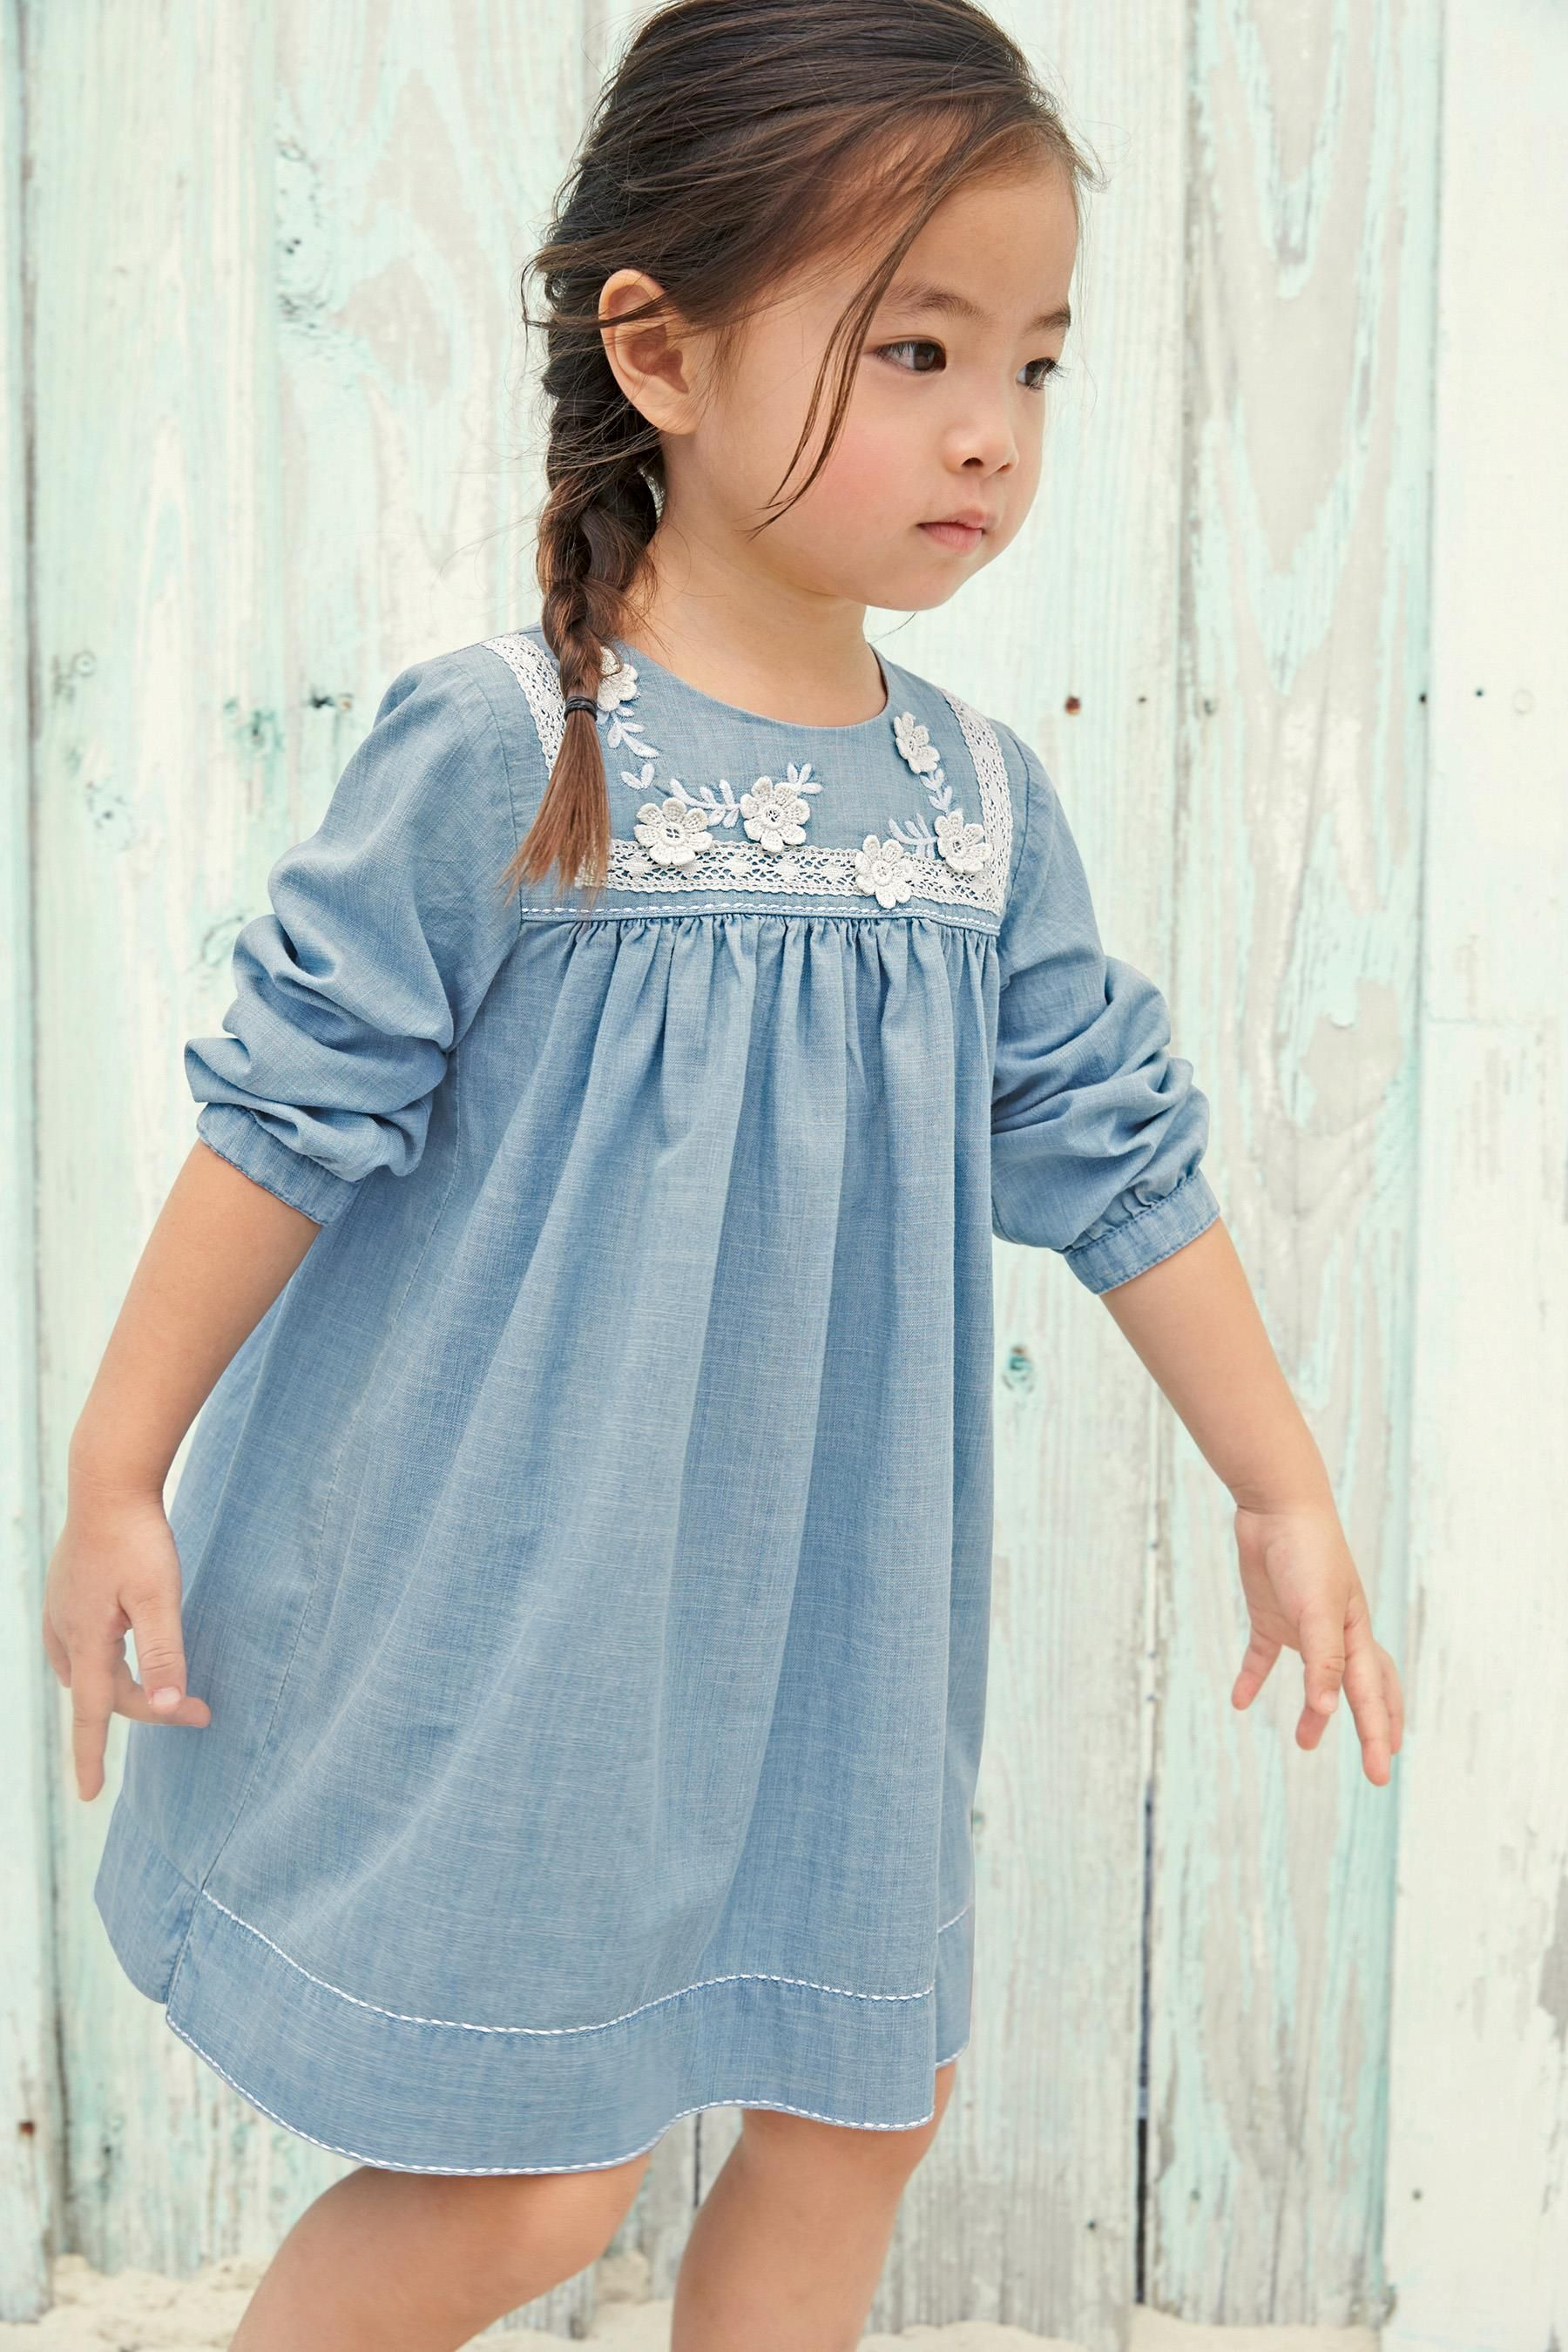 Buy Denim Lightweight Dress With Contrast Appliqué 3mths 6yrs from